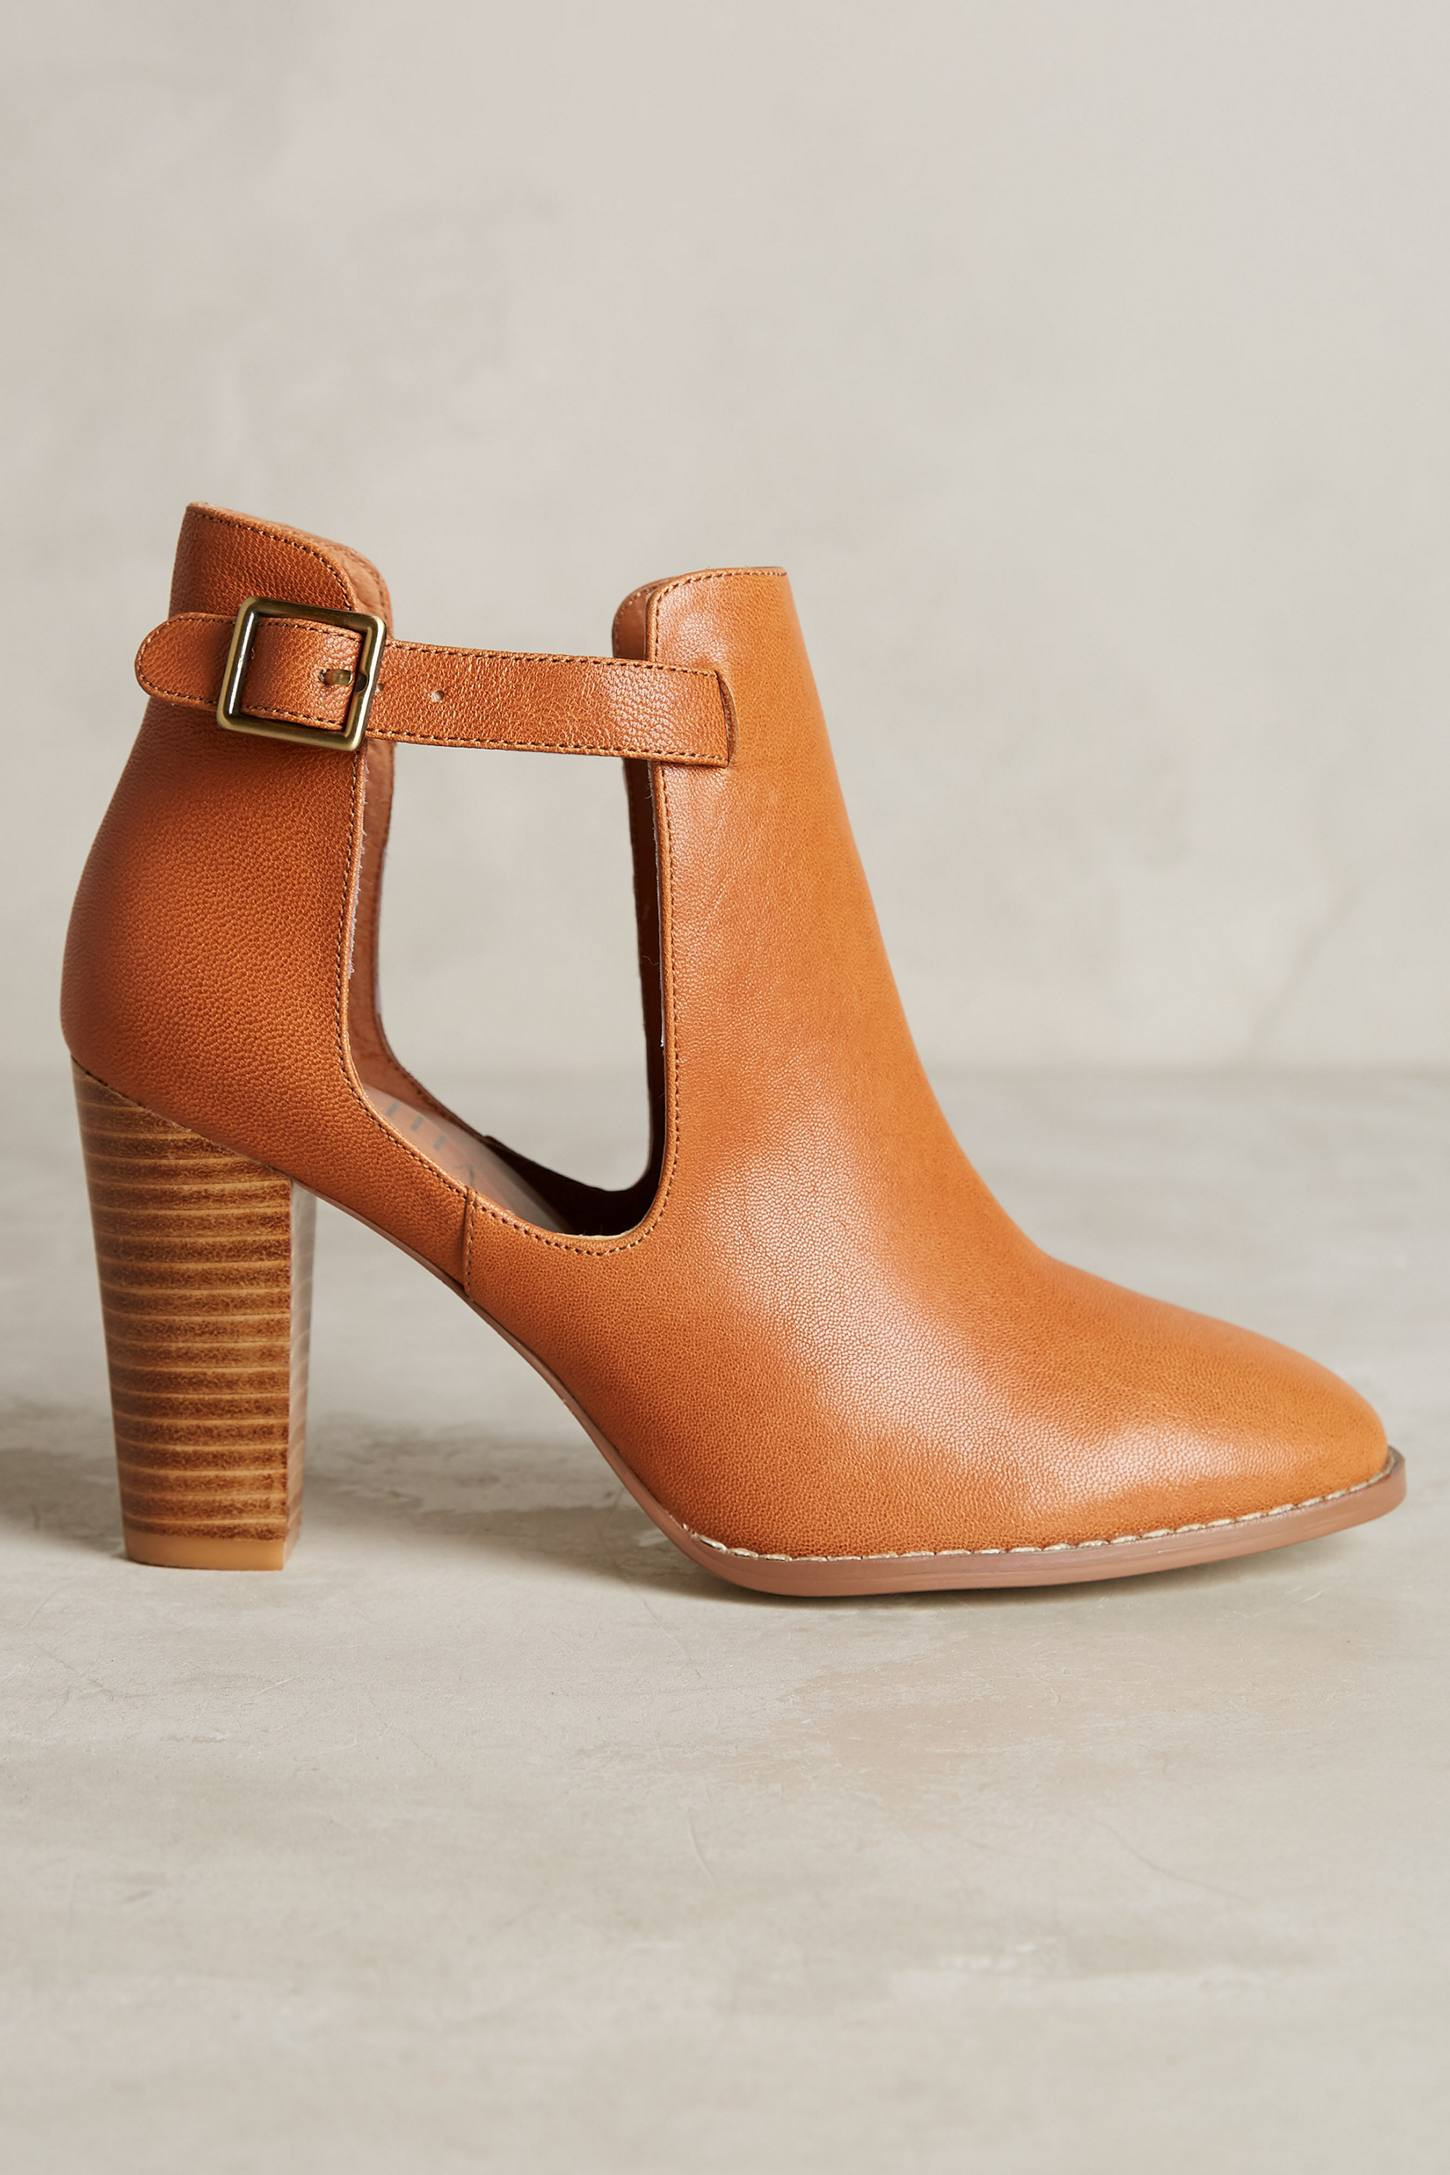 Billy Ella Odiel Booties